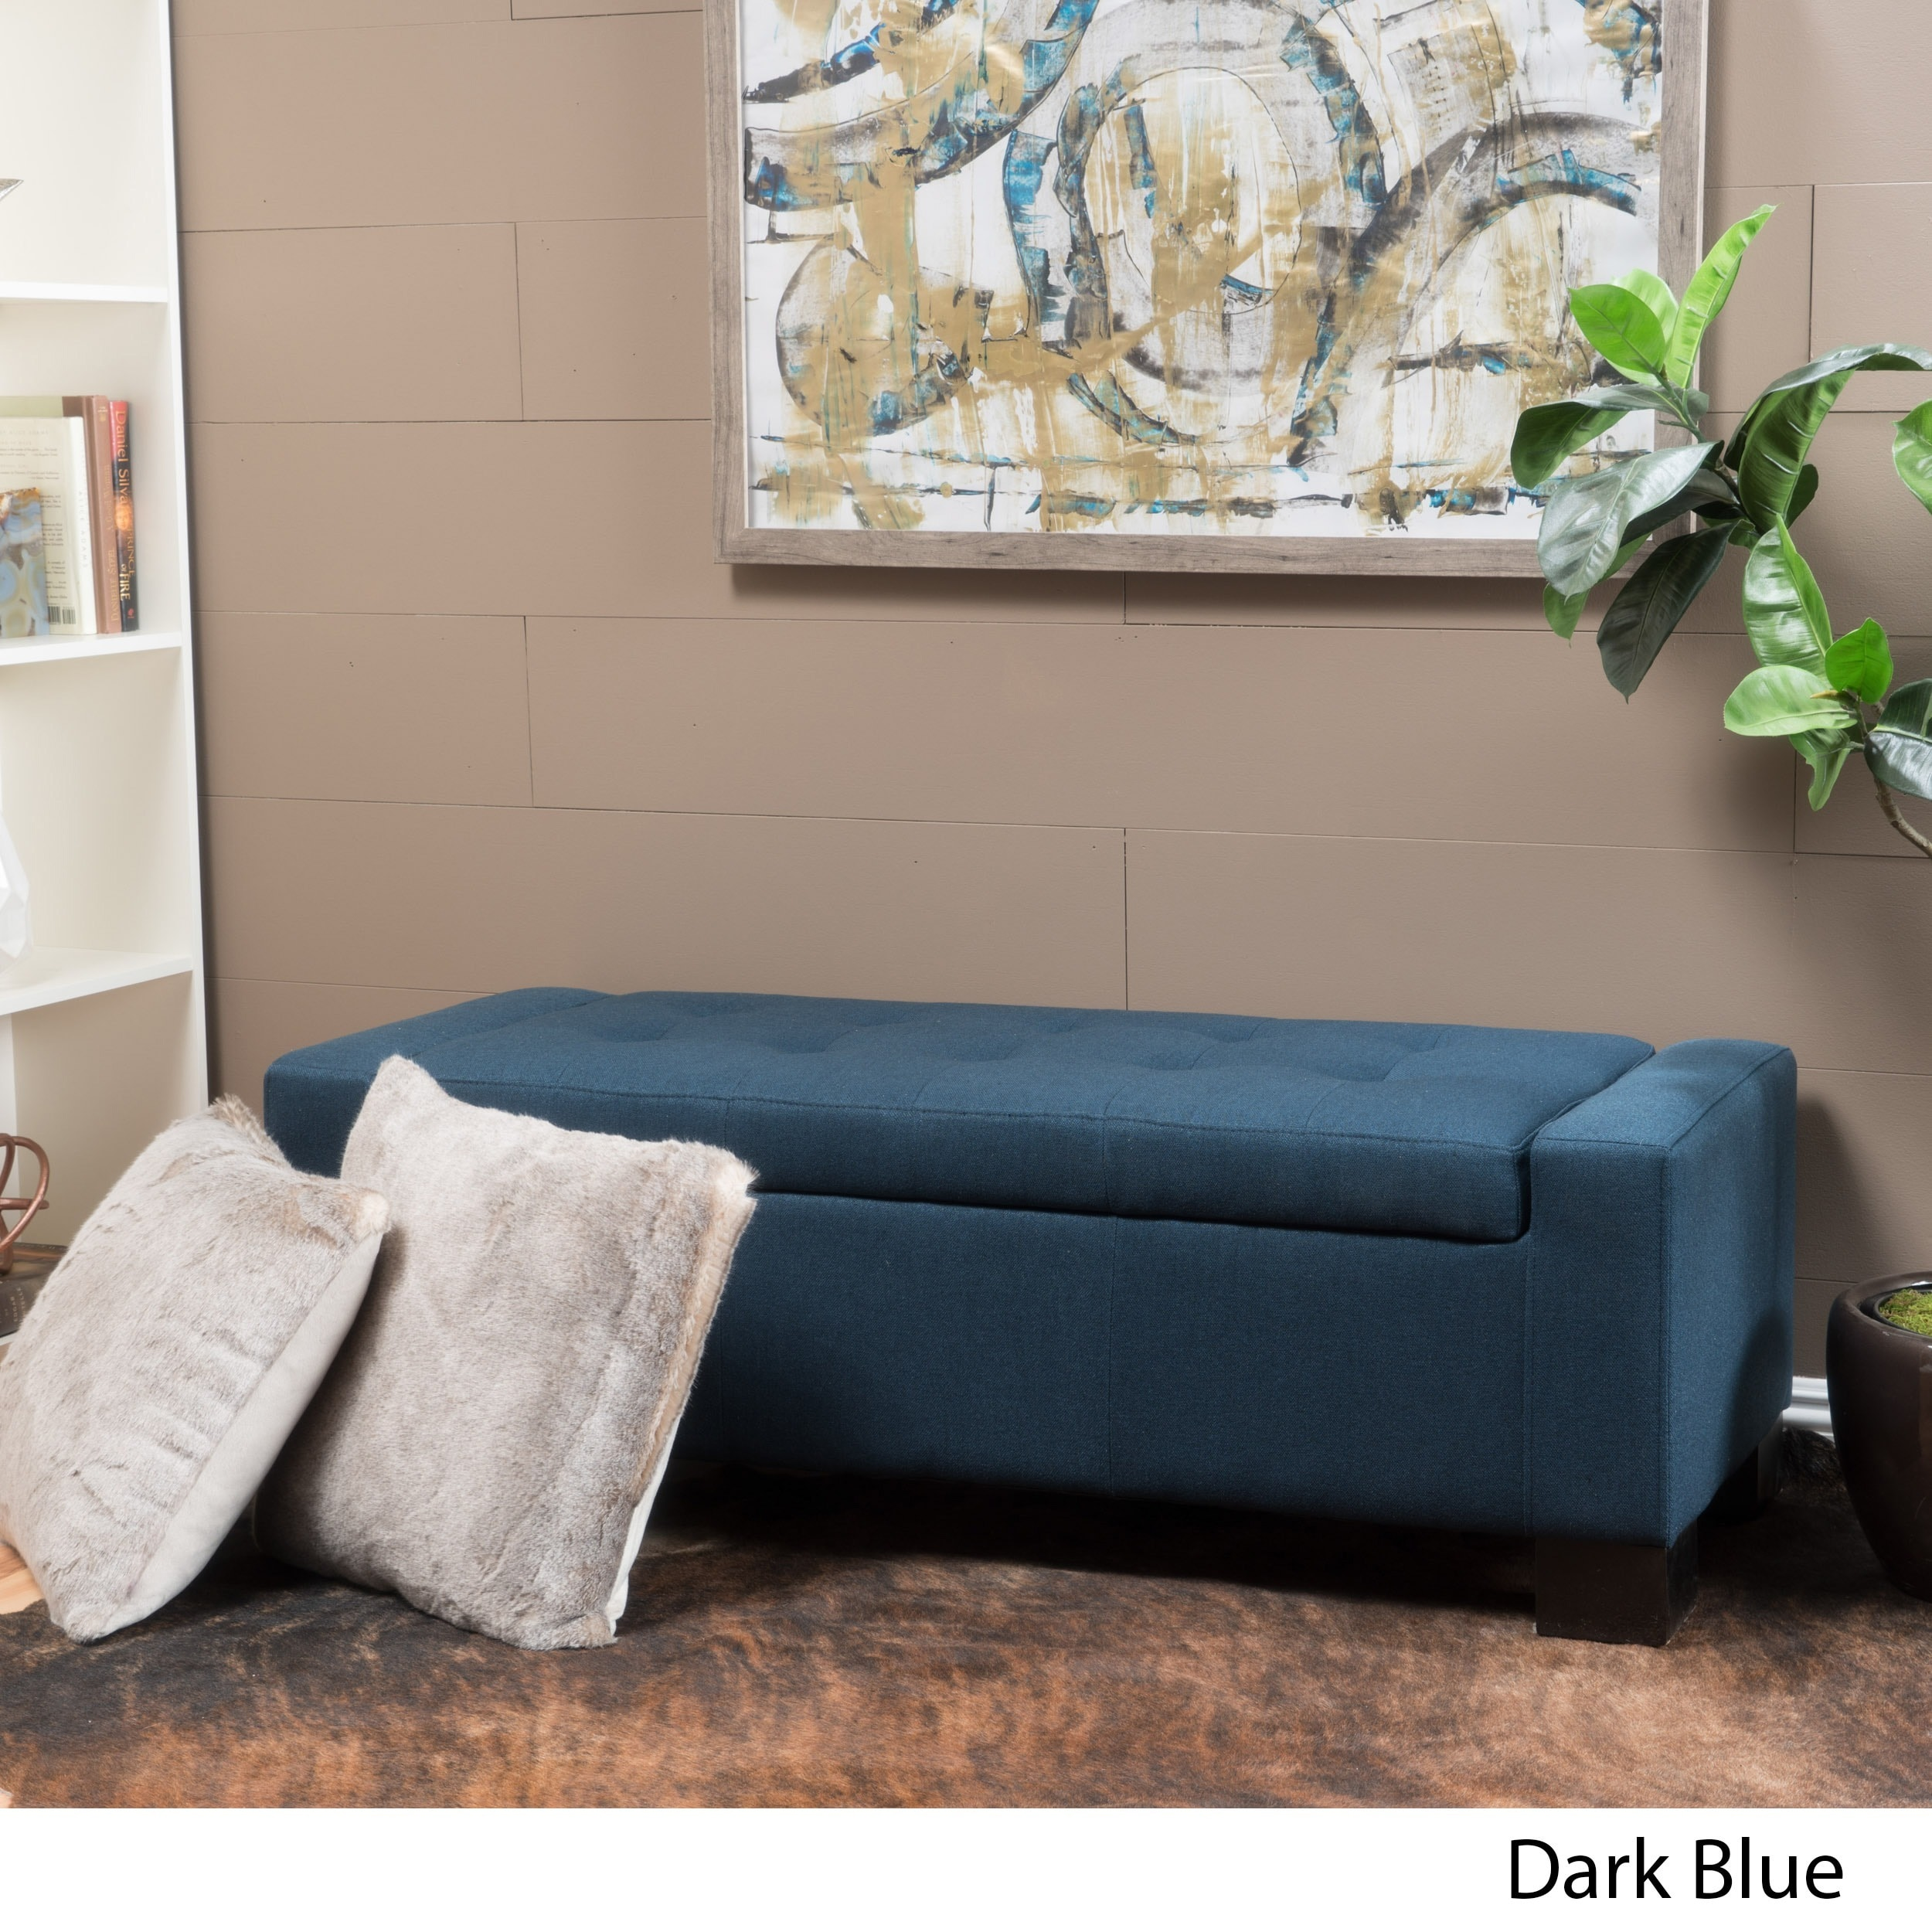 Excellent Details About Lawton Fabric Storage Ottoman Bench By Christopher Knight Large Caraccident5 Cool Chair Designs And Ideas Caraccident5Info